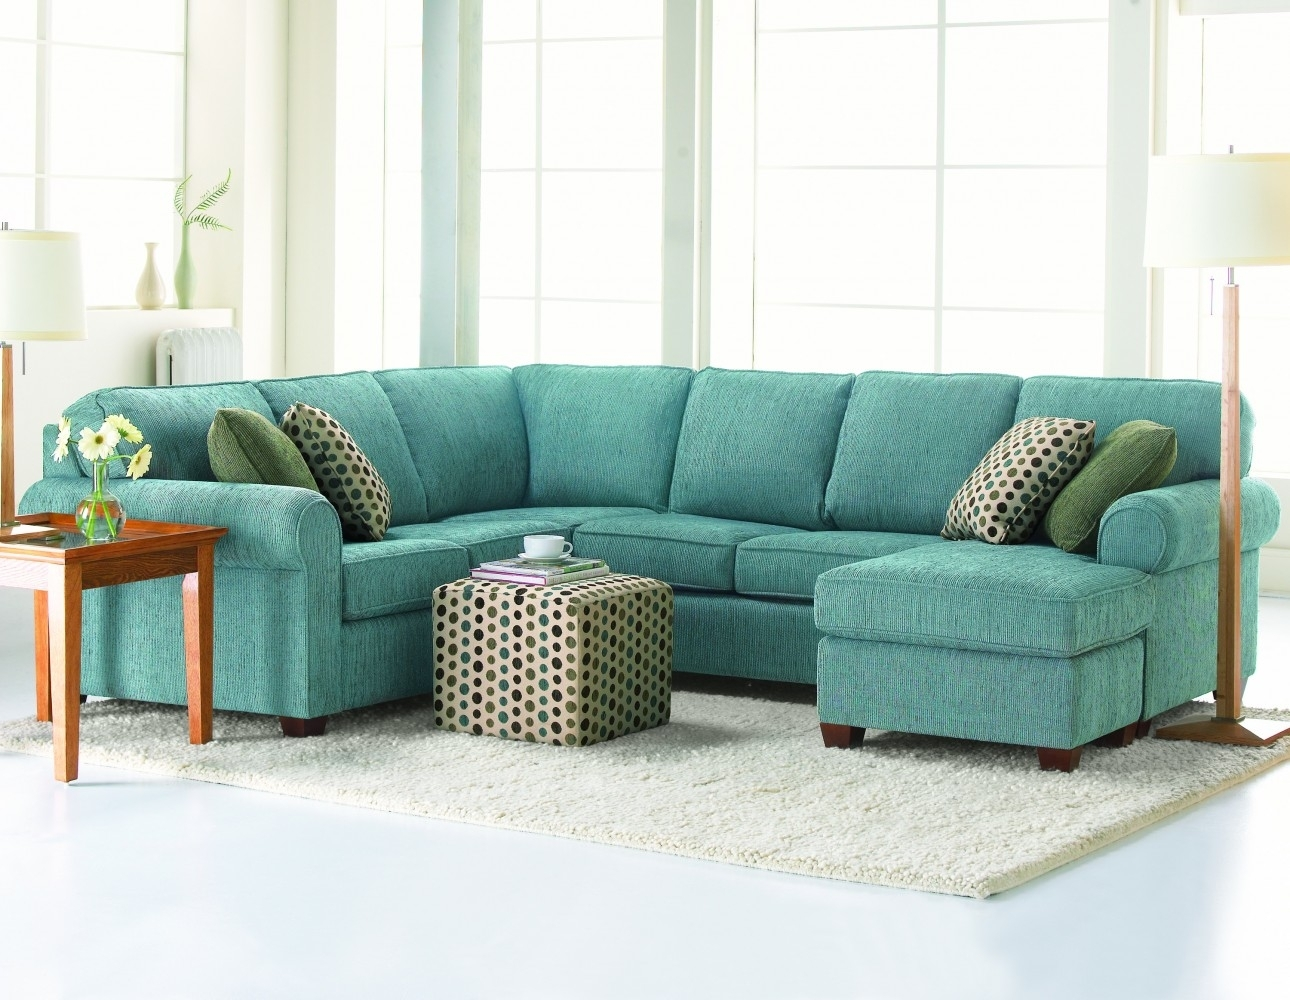 July 2017 – Sectional Sofas With Regard To Ontario Sectional Sofas (Image 3 of 10)